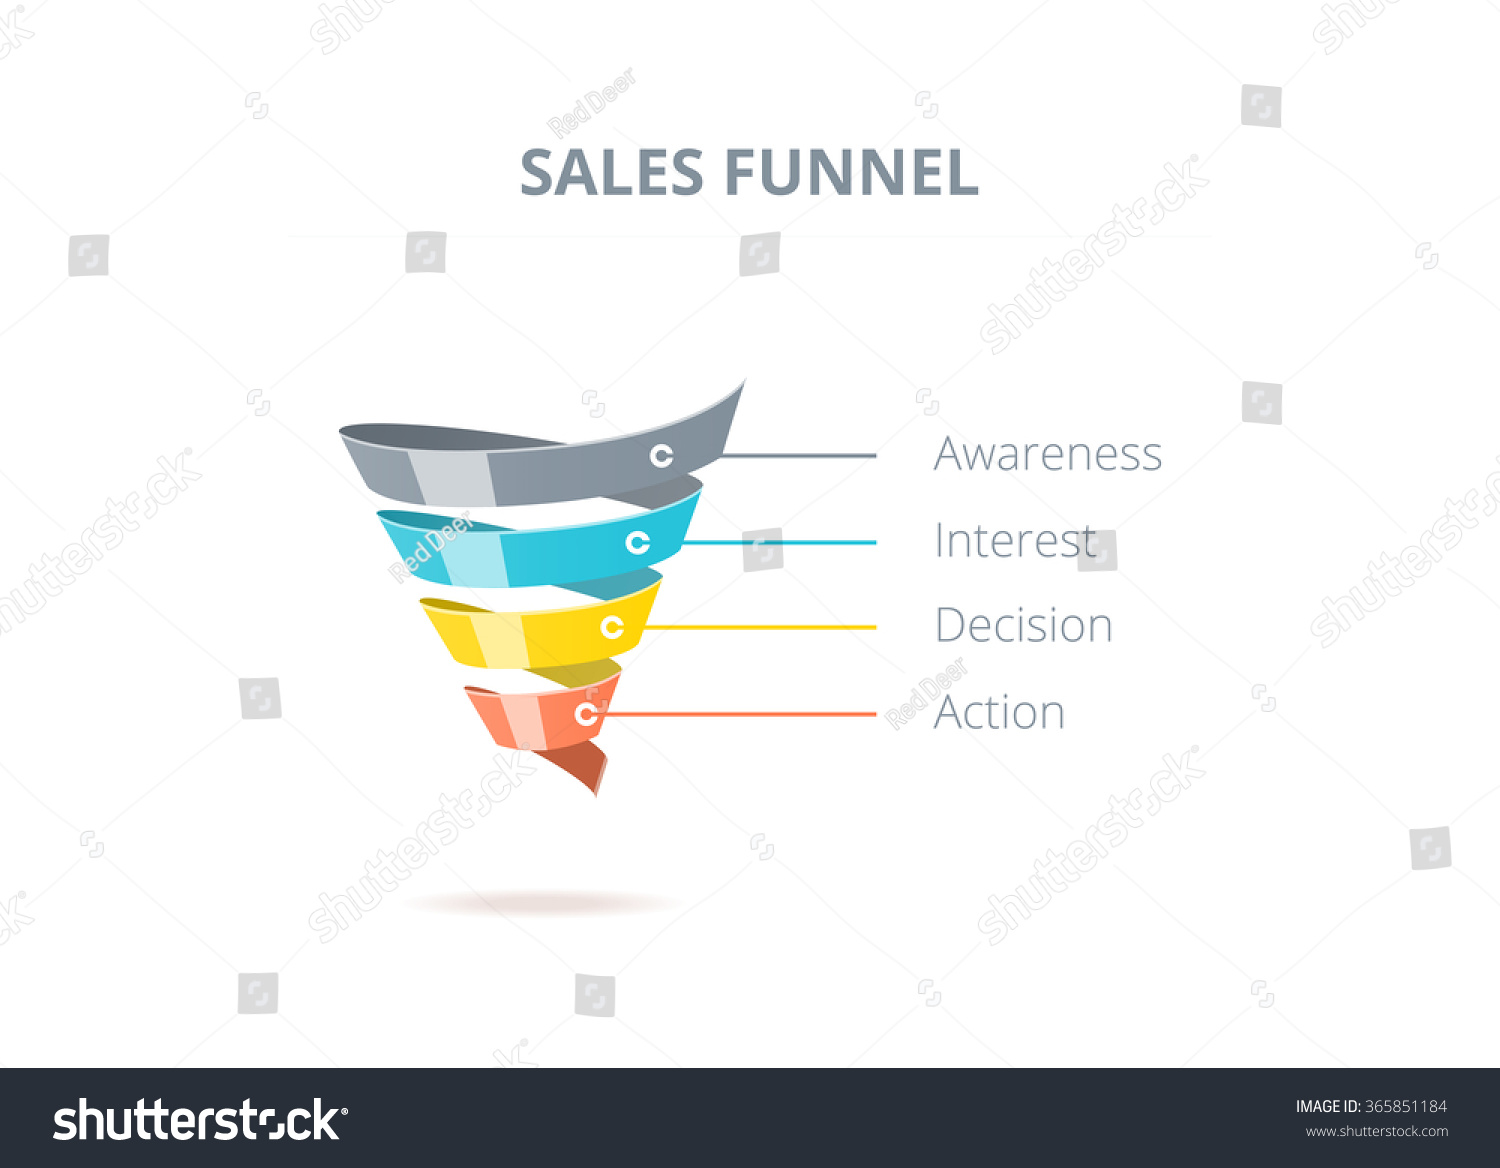 sales funnel 4 stages sales process stock vector royalty free